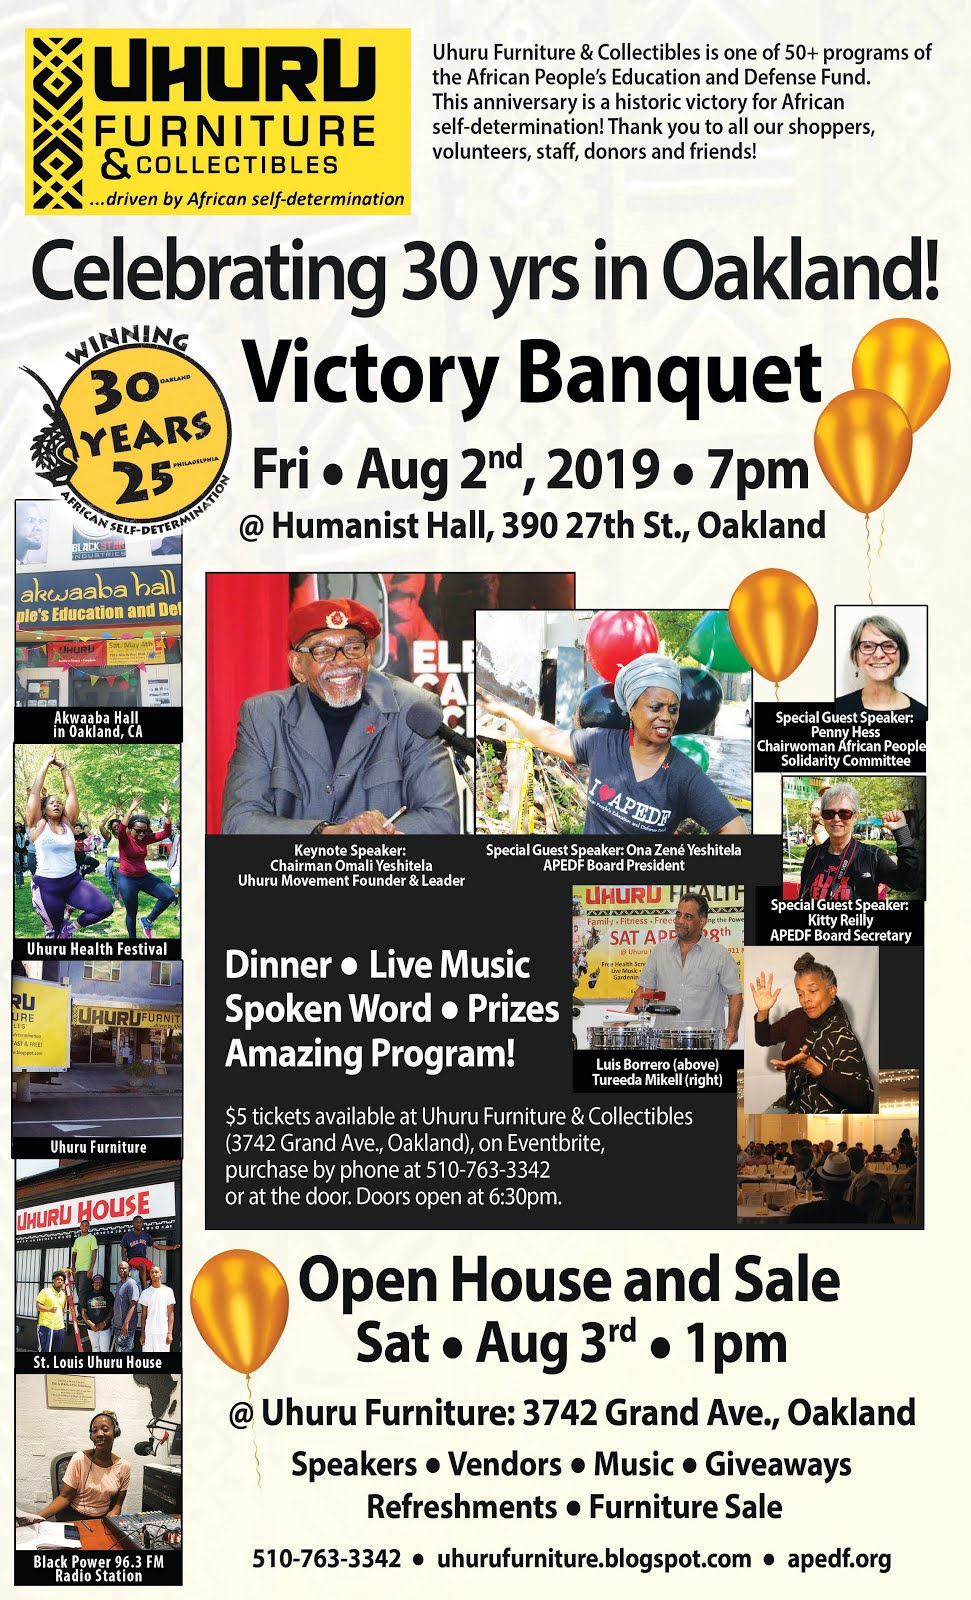 Join Us! Our 30th Anniversary Banquet! And Open House!